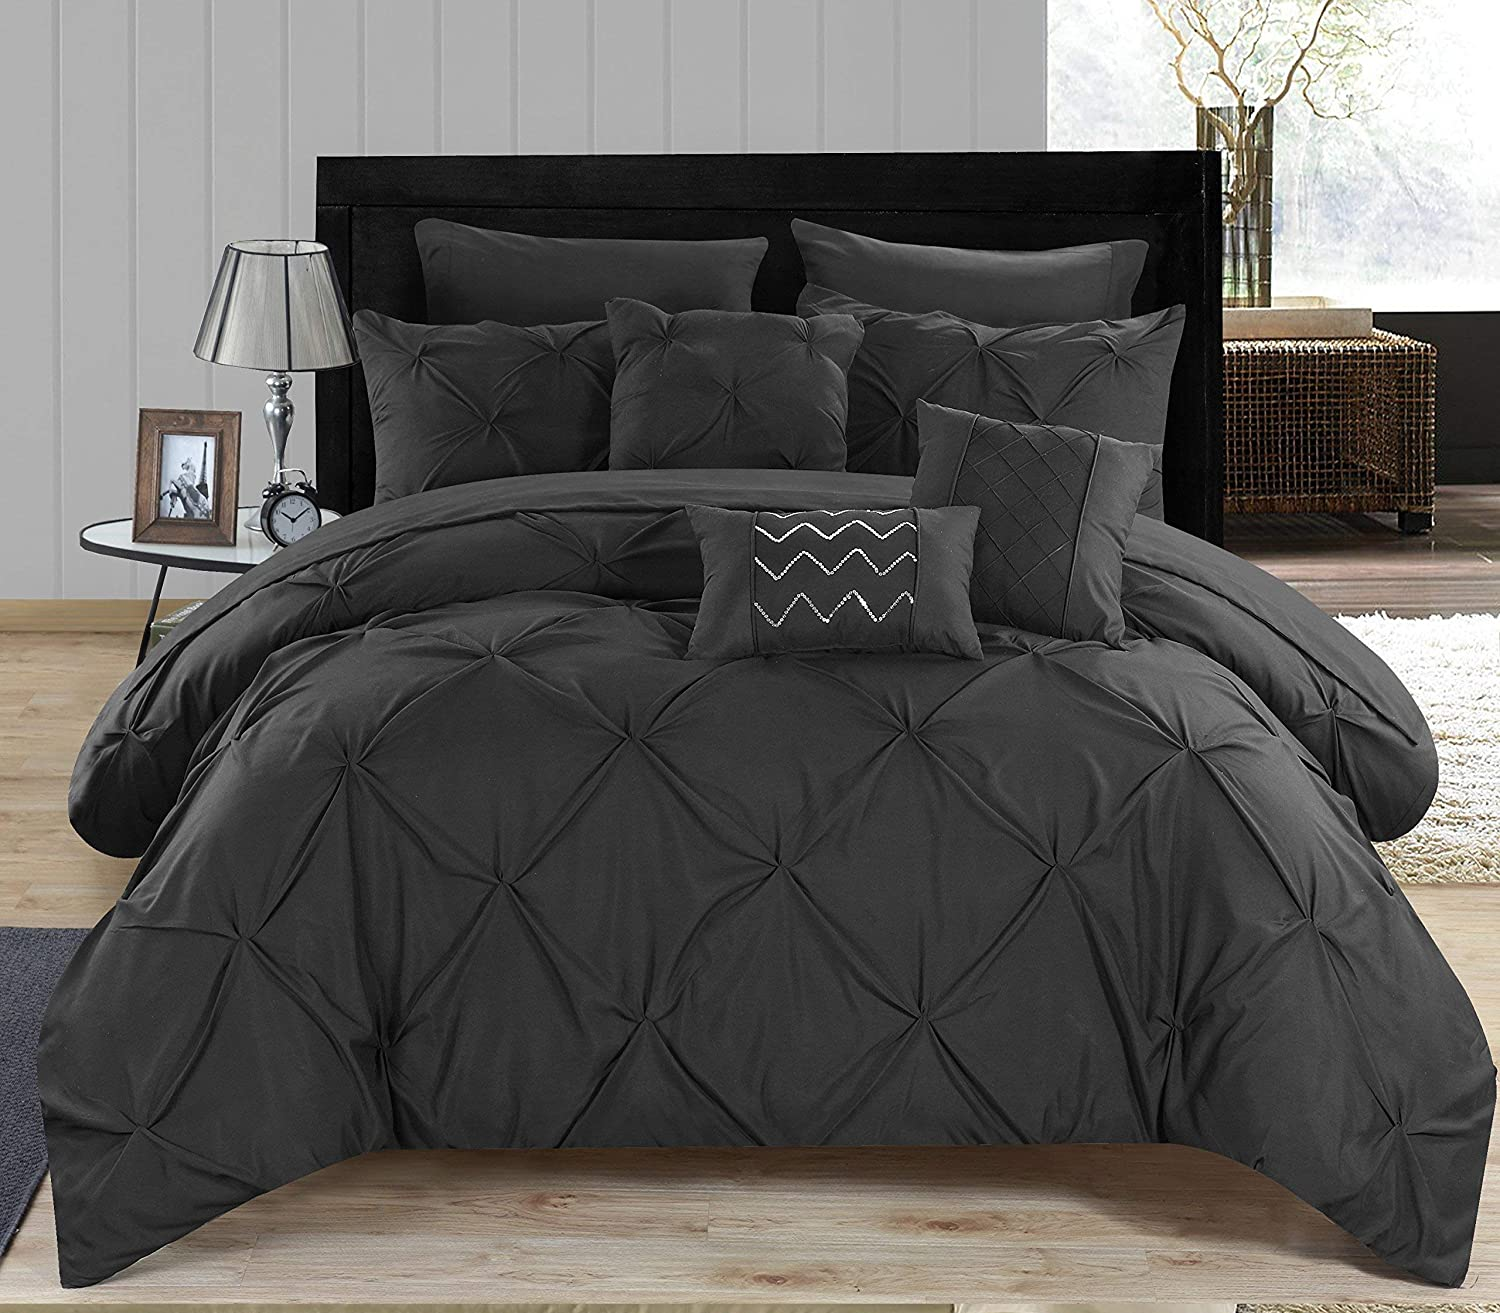 Chic Home 8 Piece Hannah Pinch Pleated, Ruffled & Pleated Complete Twin Bed Black Sheet Set